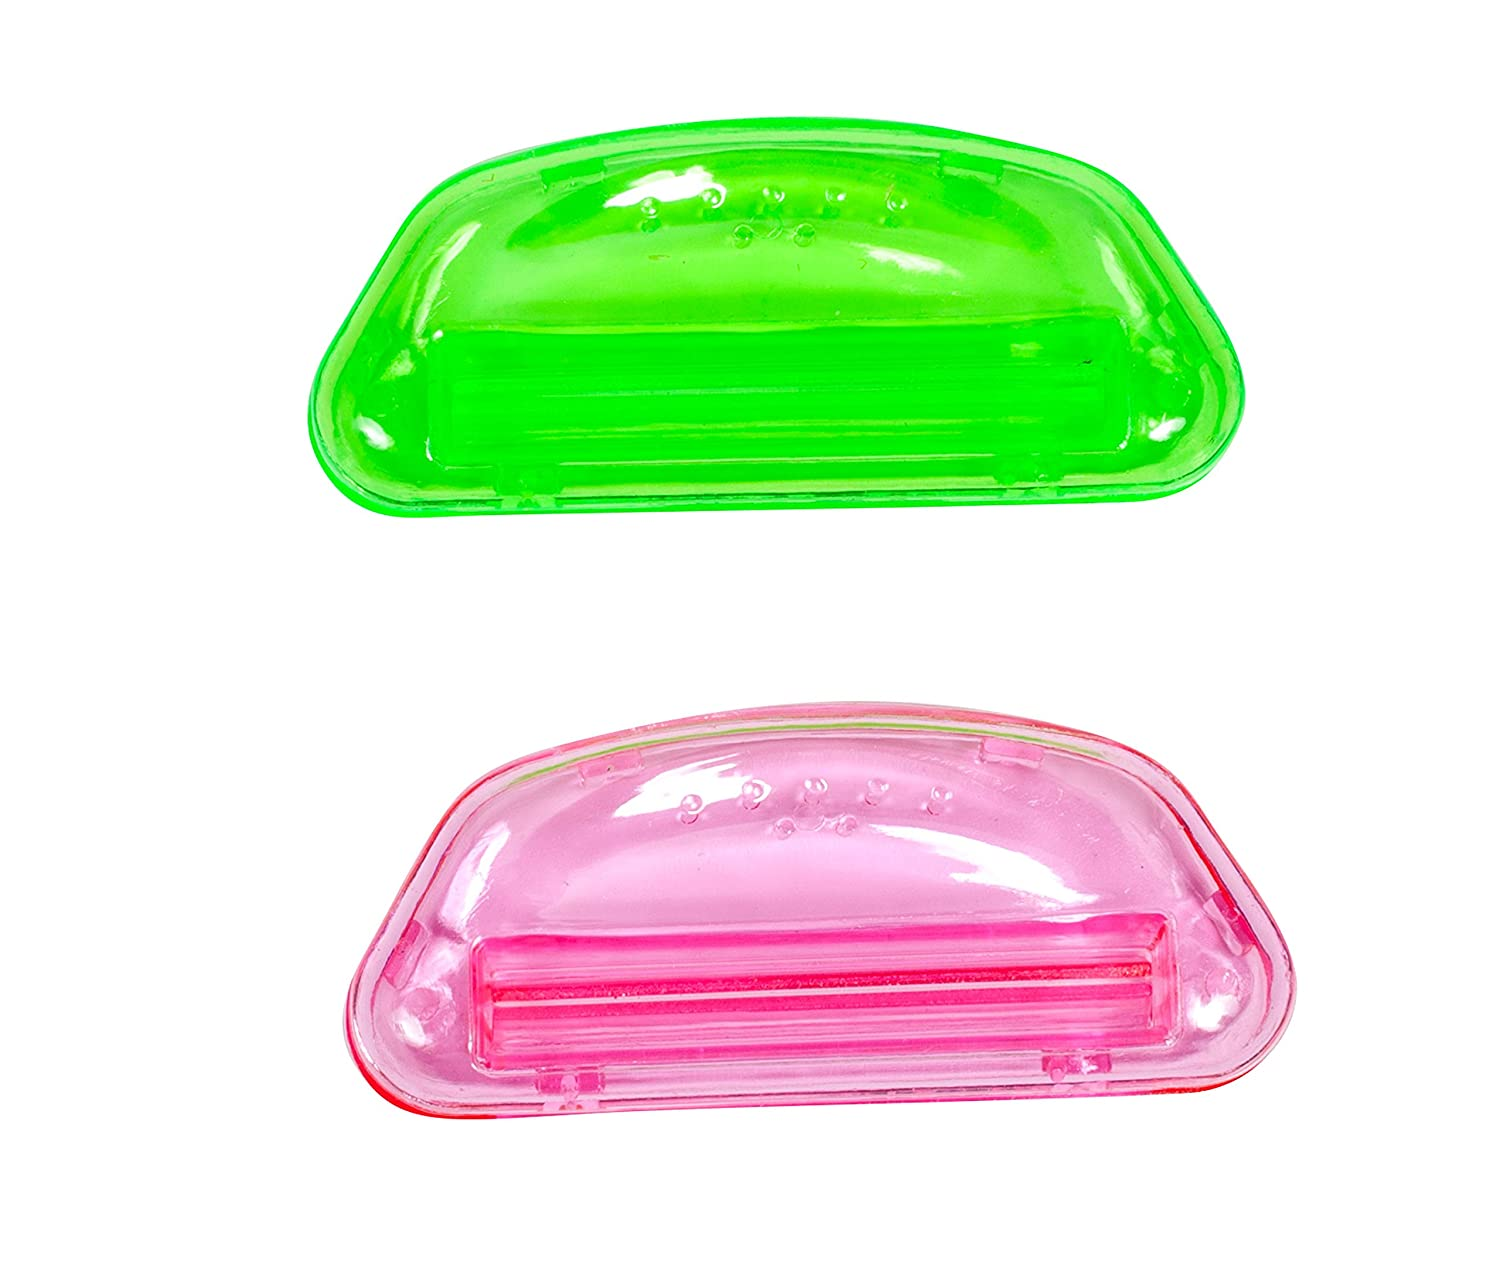 Amazon.com: Brite Concepts Tube Squeezers, 2 Count, Green and Pink, 2-pack (4 Tube Squeezers): Health & Personal Care